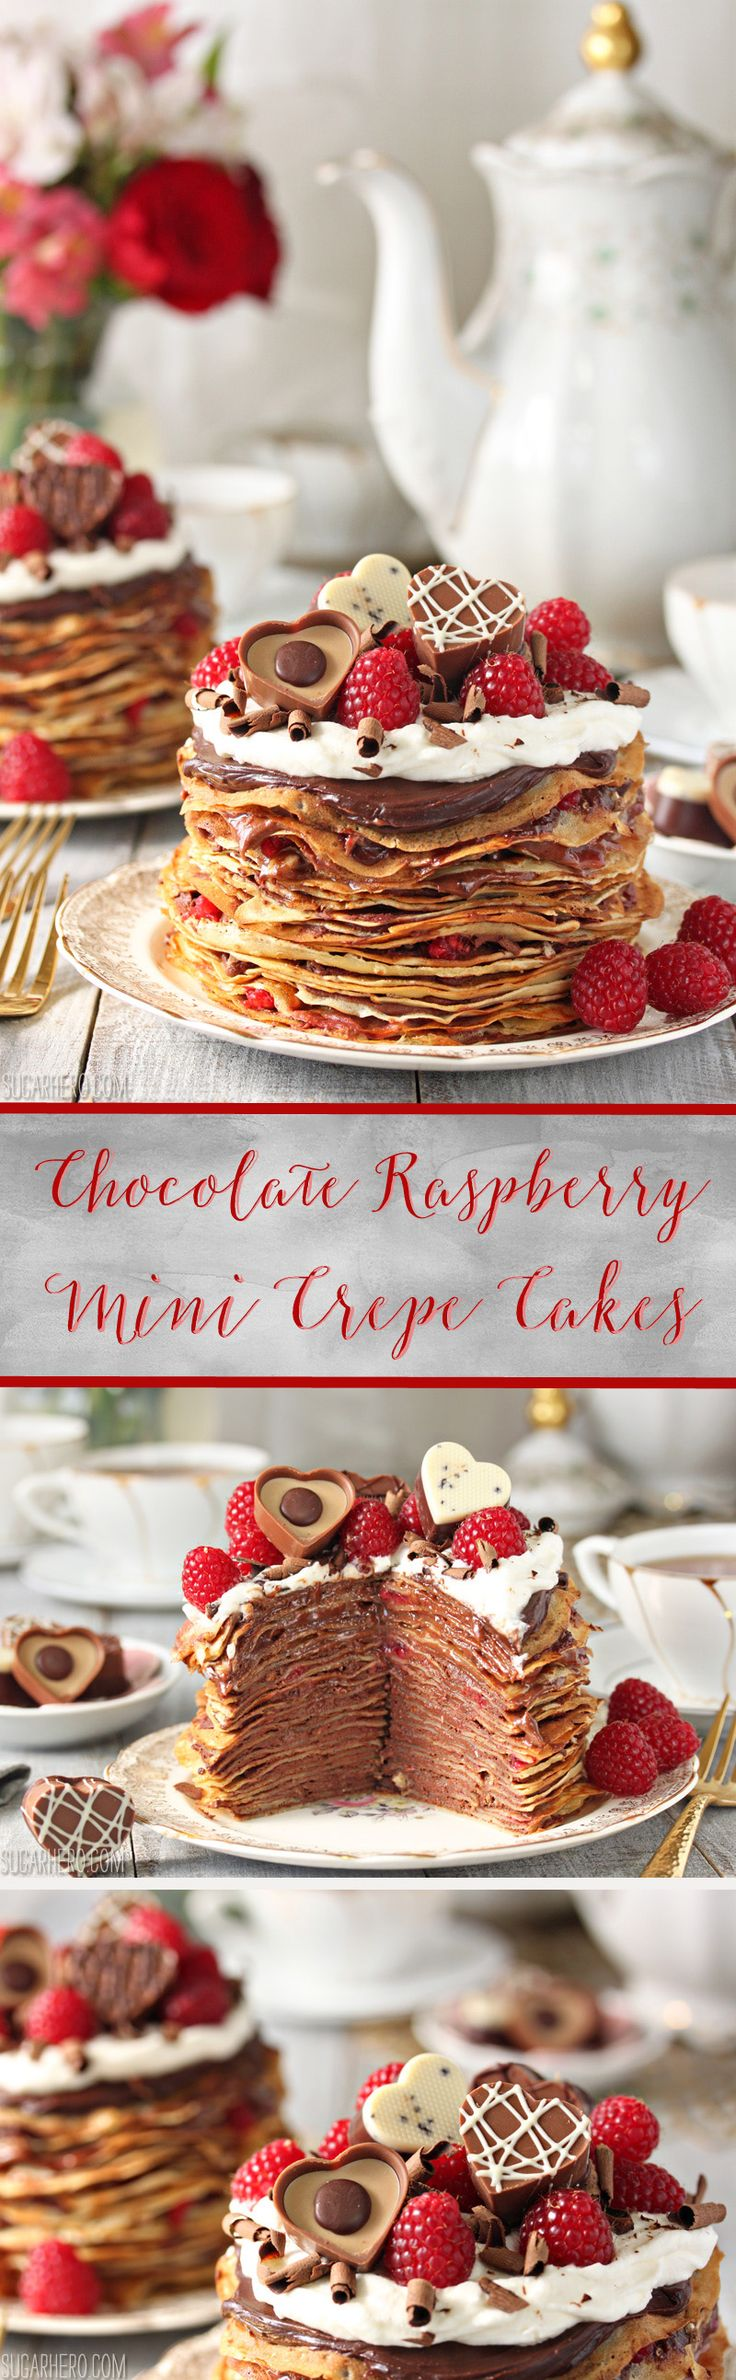 Chocolate Raspberry Mini Crepe Cakes are cakes made from mini crepes! Stack them with raspberry-chocolate ganache and top them with whipped cream!